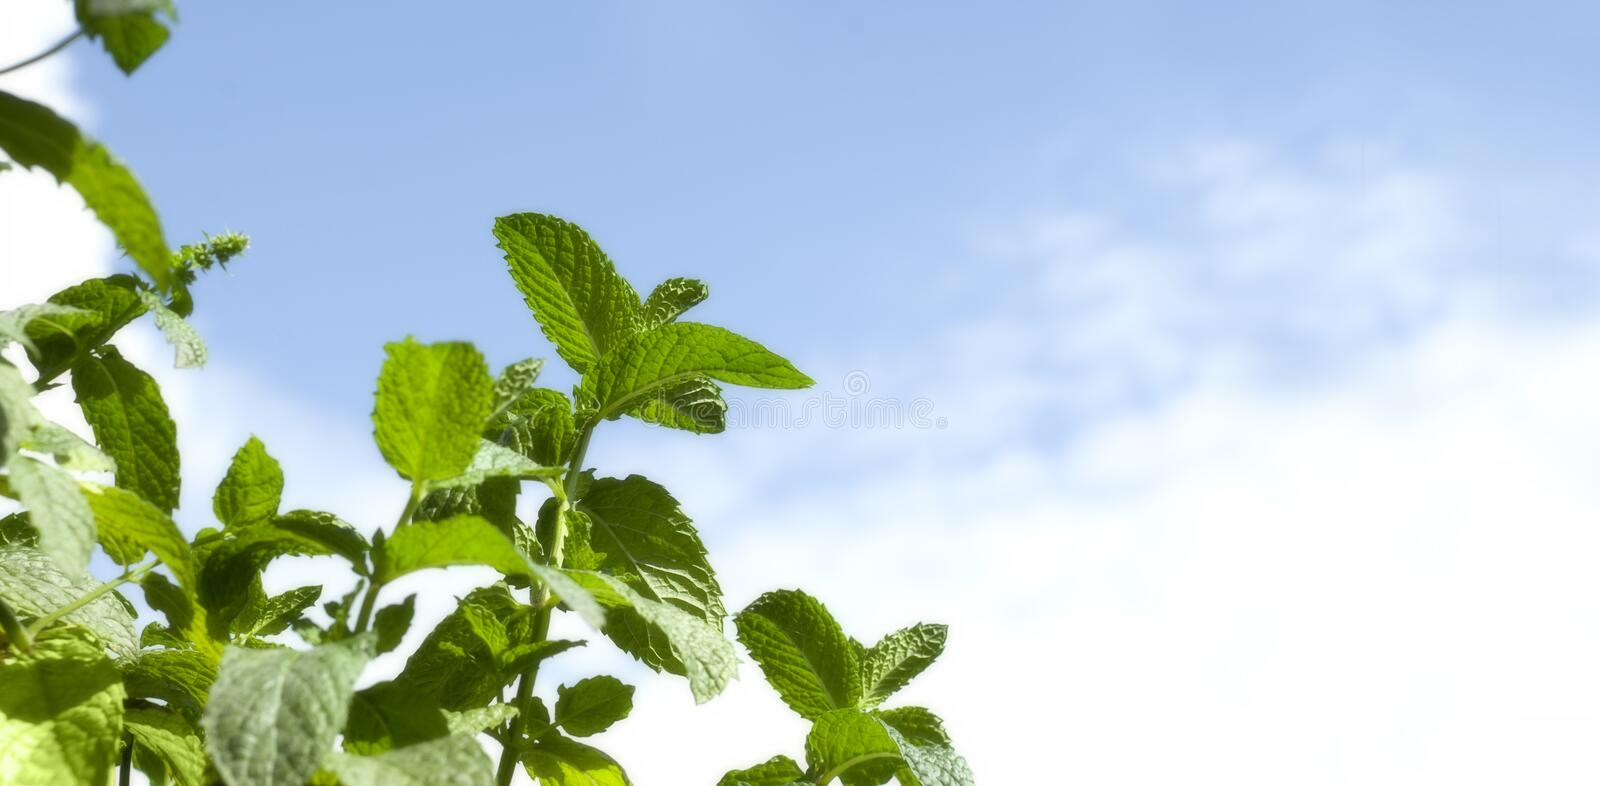 Download Mint Leaves on Blue Sky stock image. Image of fresh, blue - 22576655